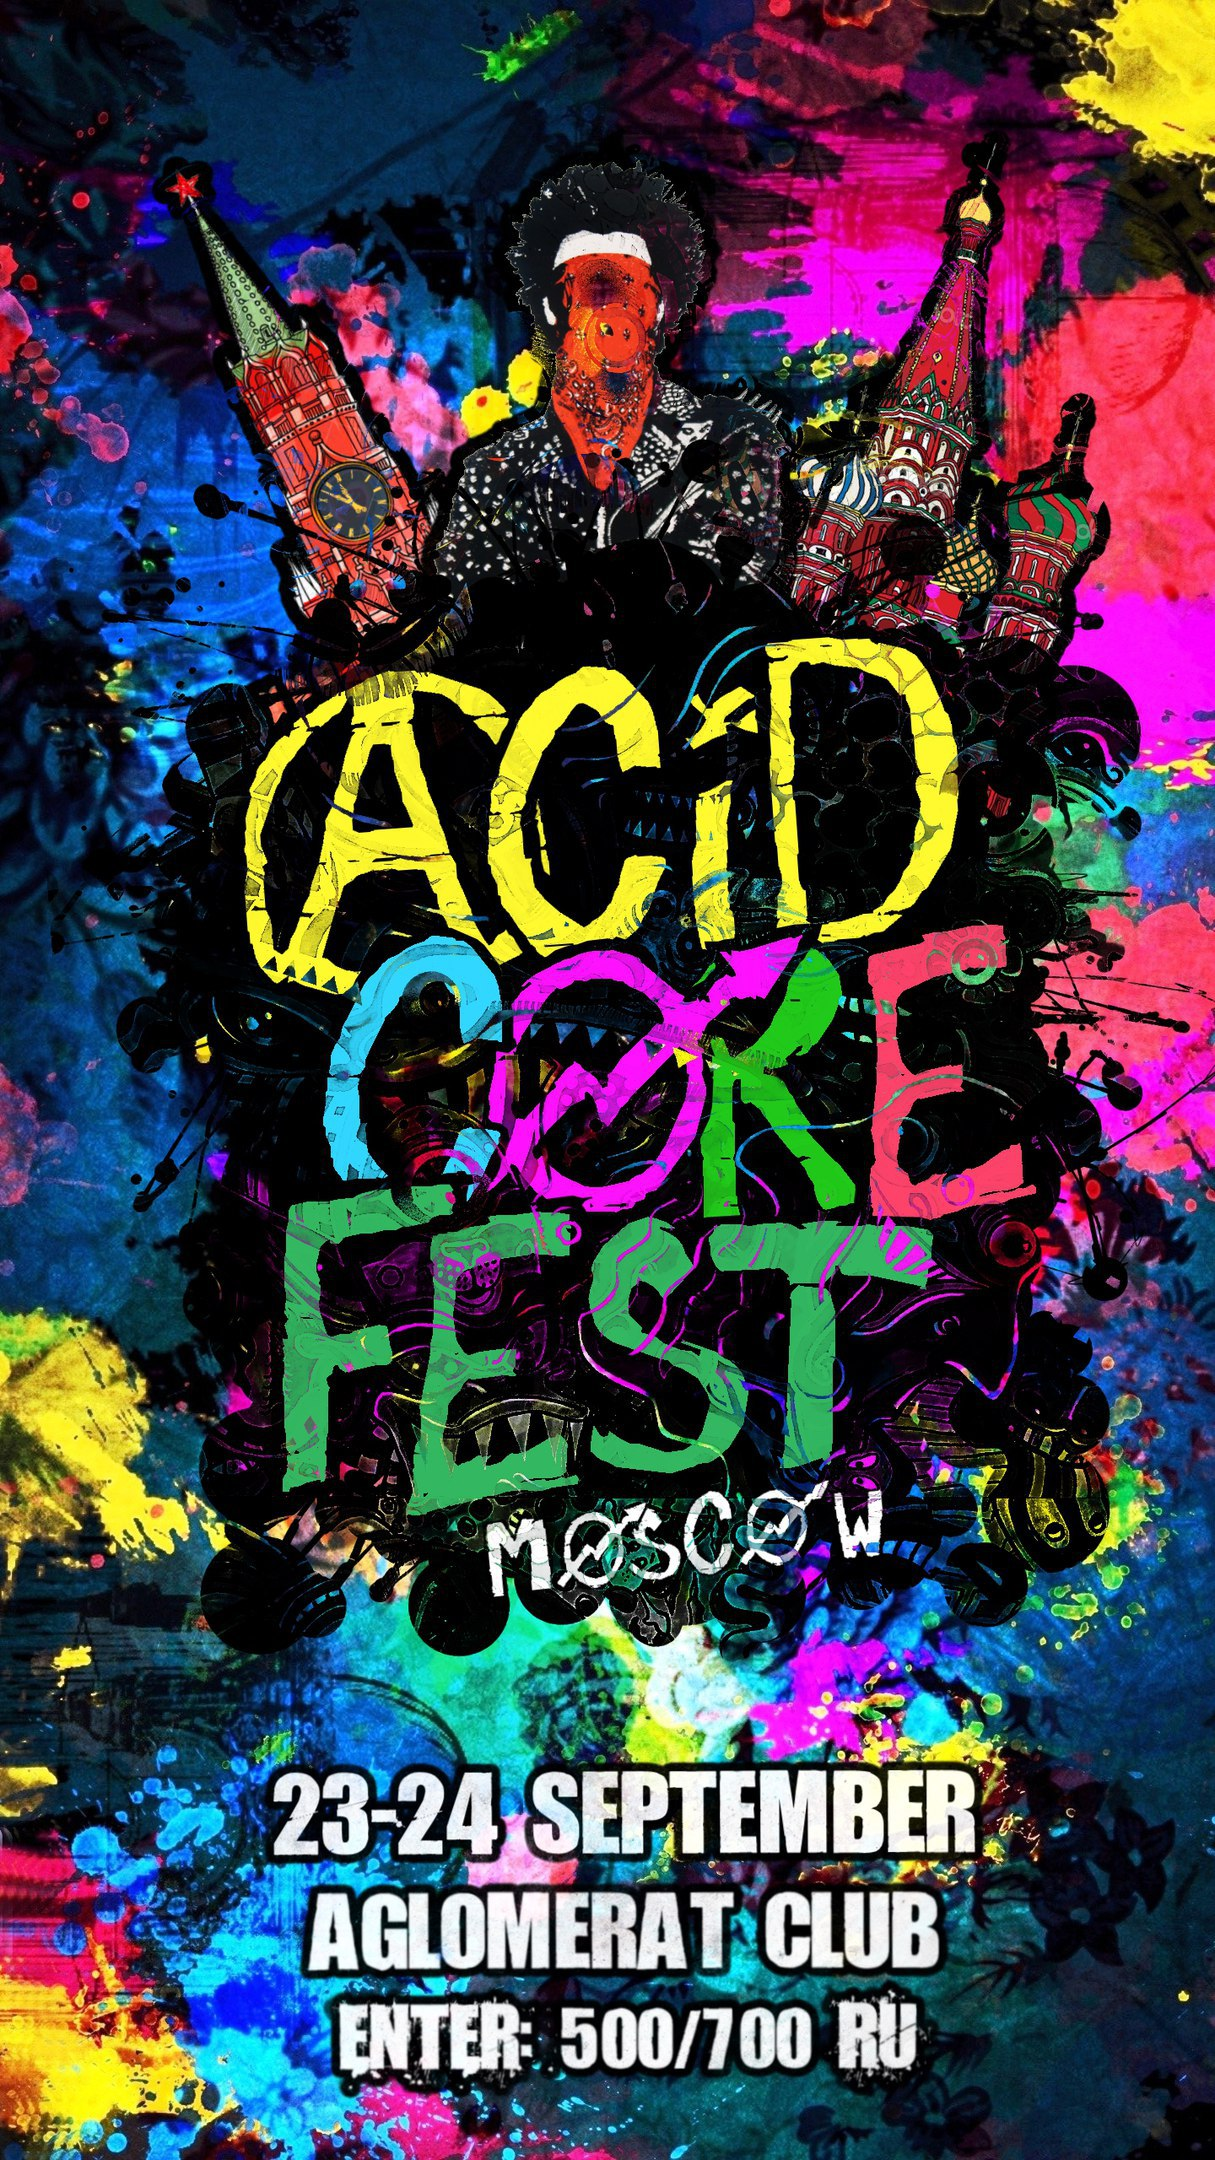 24.09.2016 Acidcorefest.moscowedition @ Anglomerat Club, Moscow (RU)